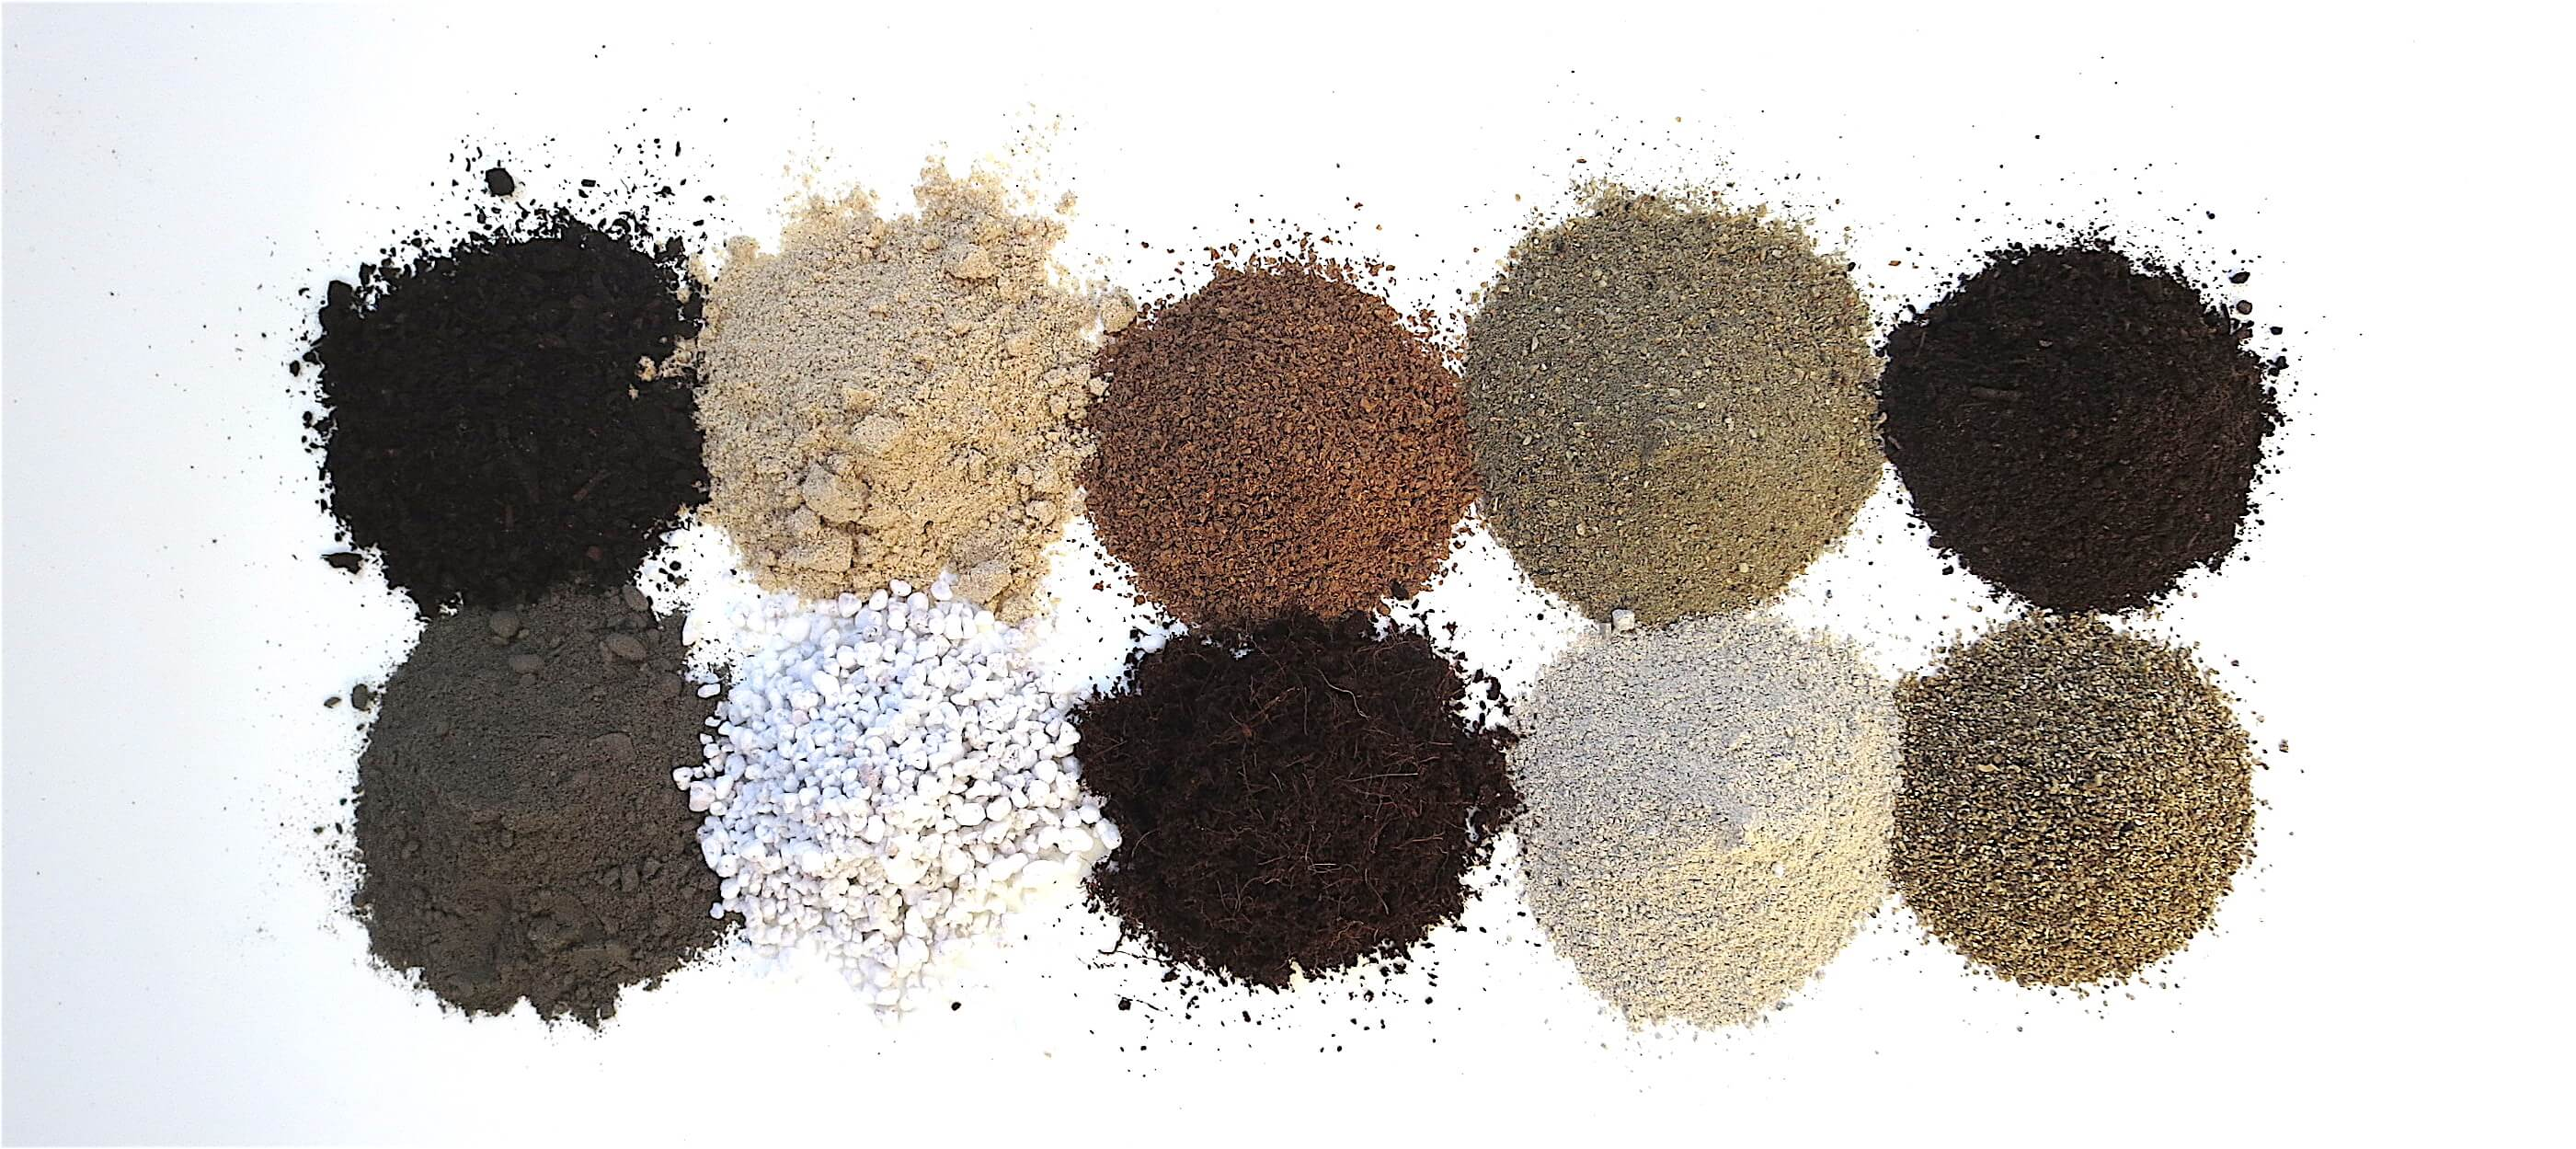 Freedom Farms Soil Components